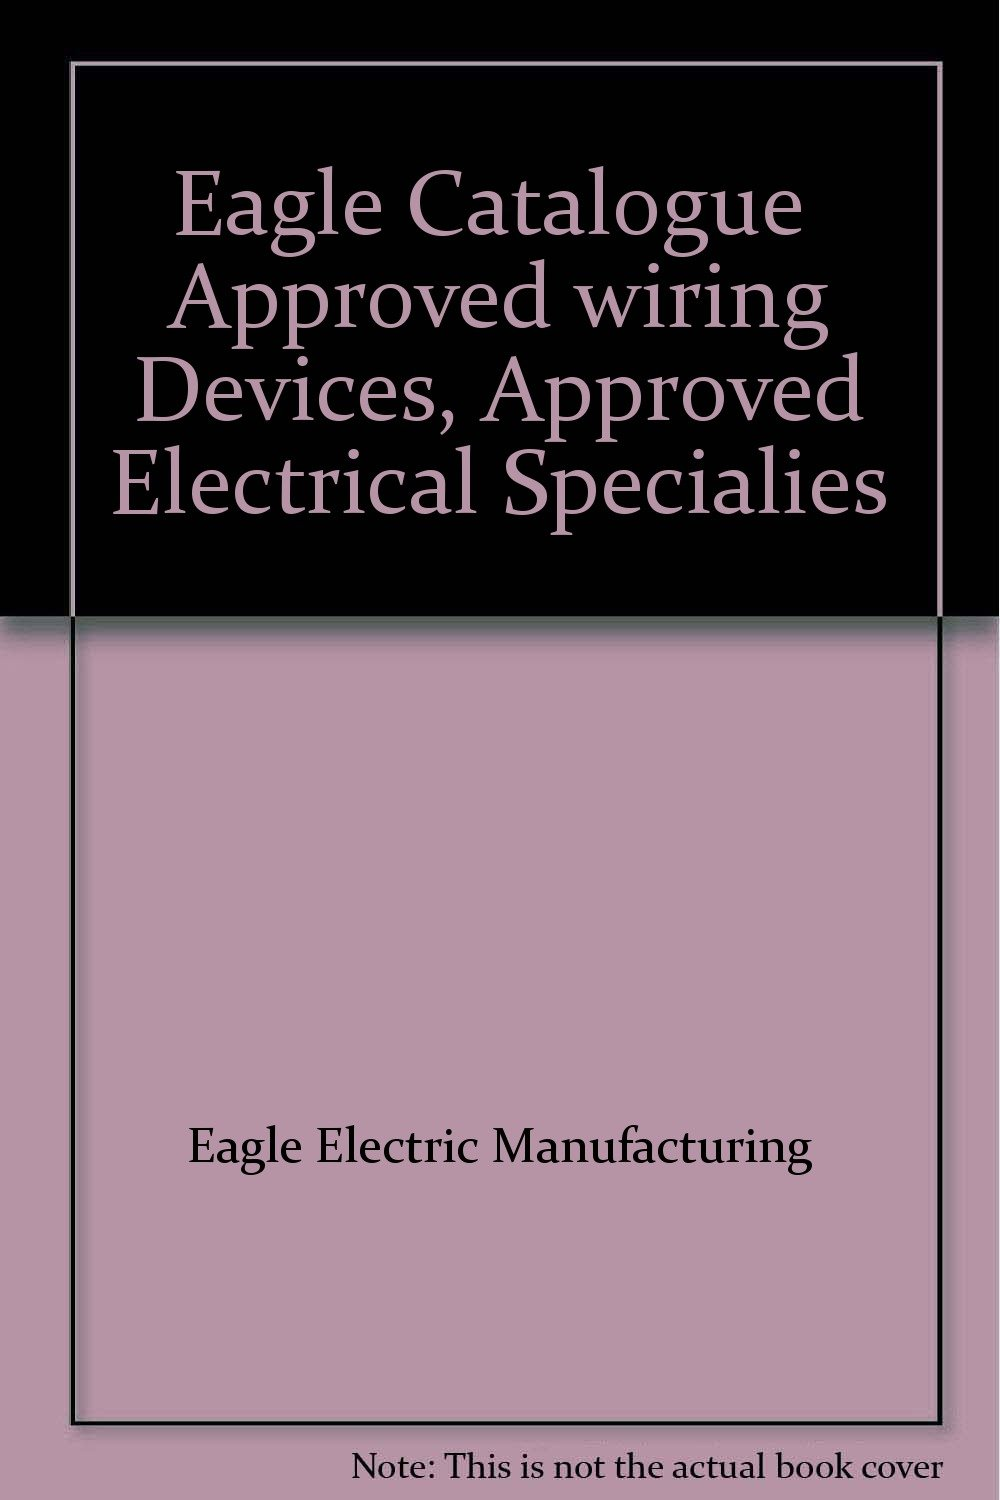 Eagle Catalogue Approved wiring Devices, Approved Electrical ...